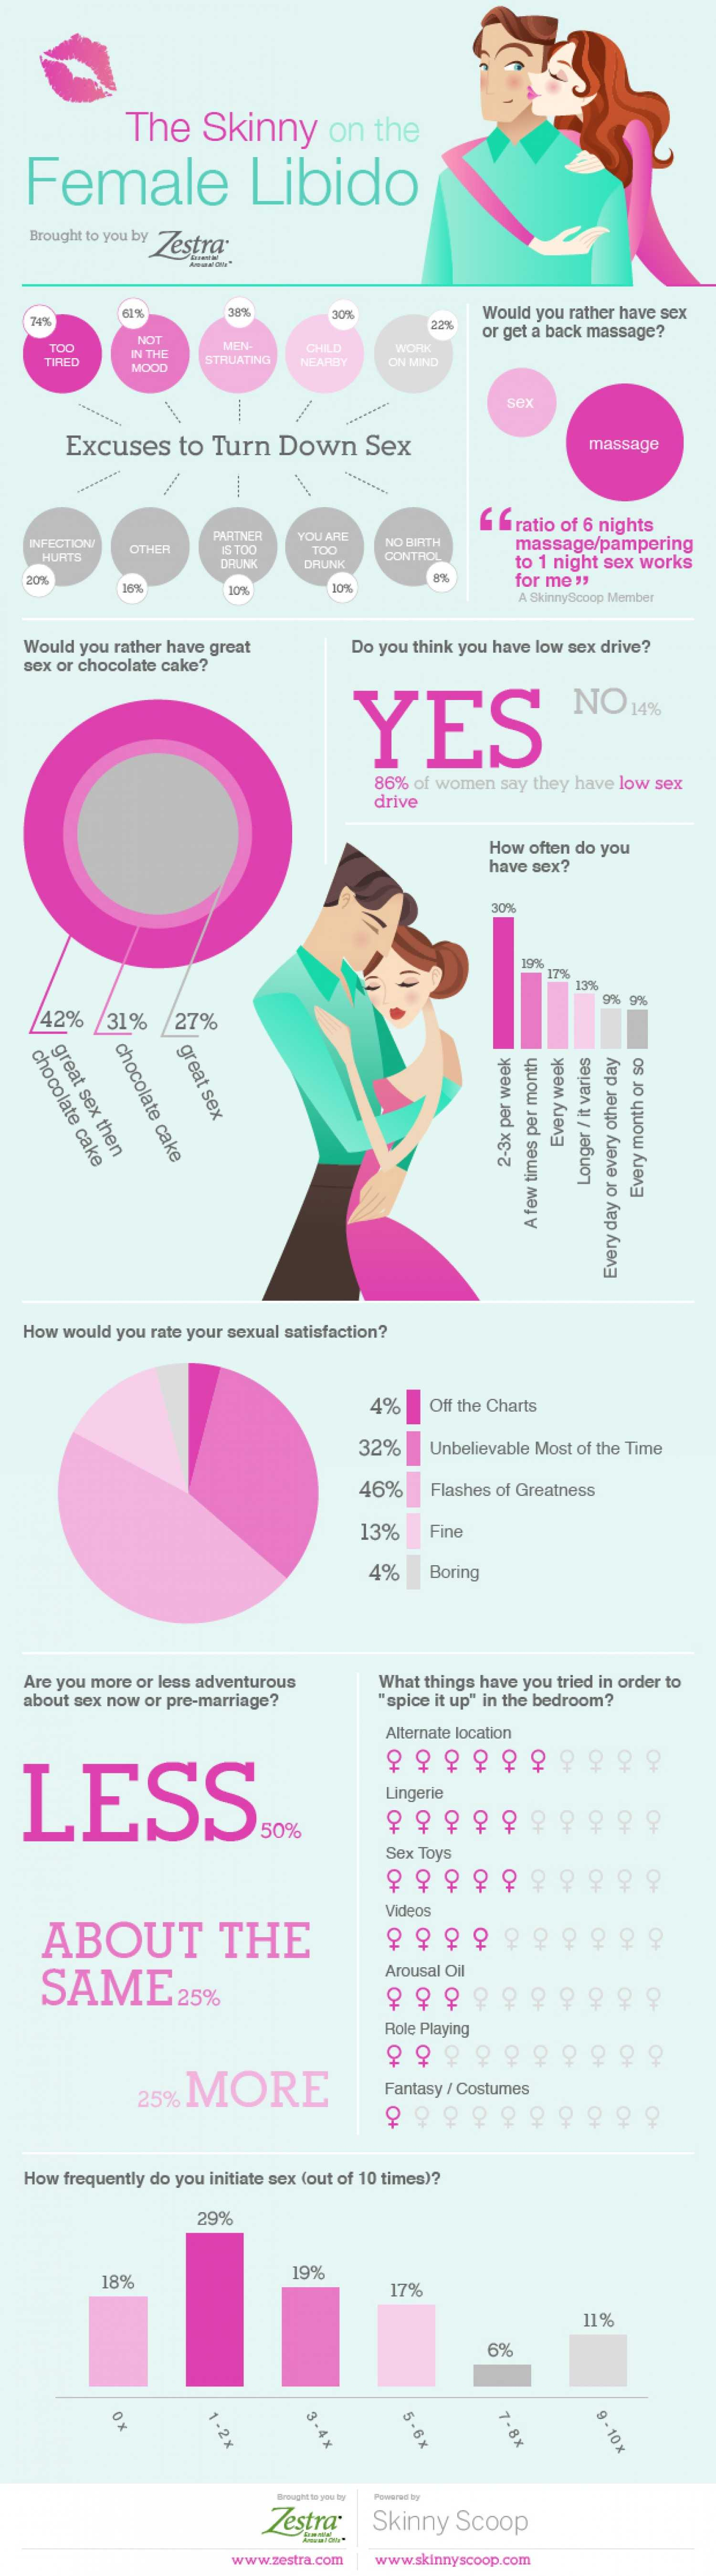 The Skinny On The Female Libido